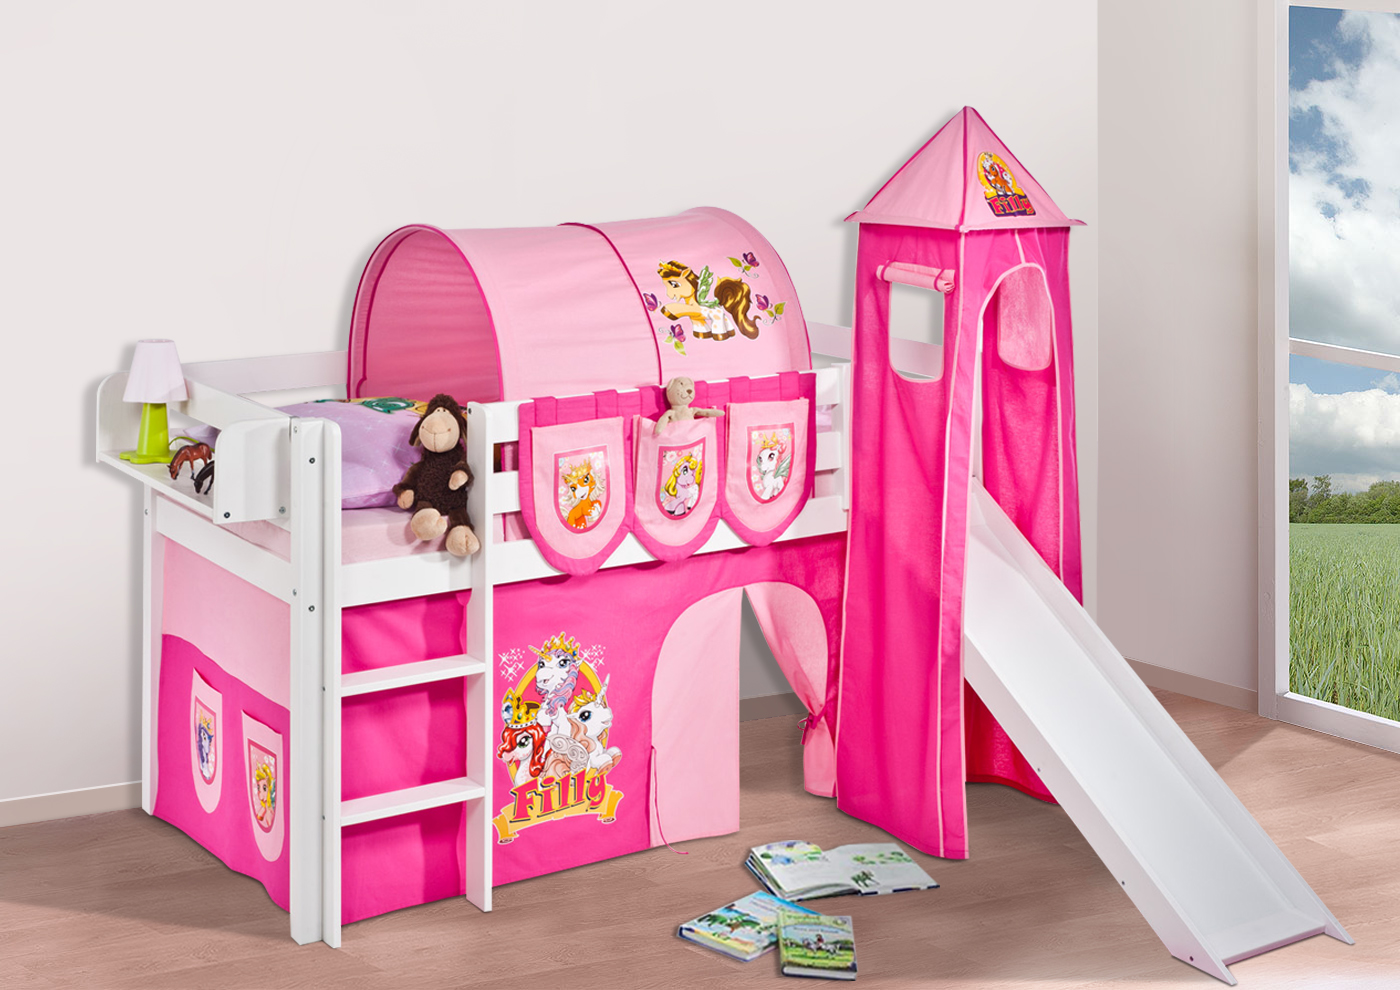 spielbett hochbett kinderbett jelle mit turm rutsche buche massivholz lilokids ebay. Black Bedroom Furniture Sets. Home Design Ideas